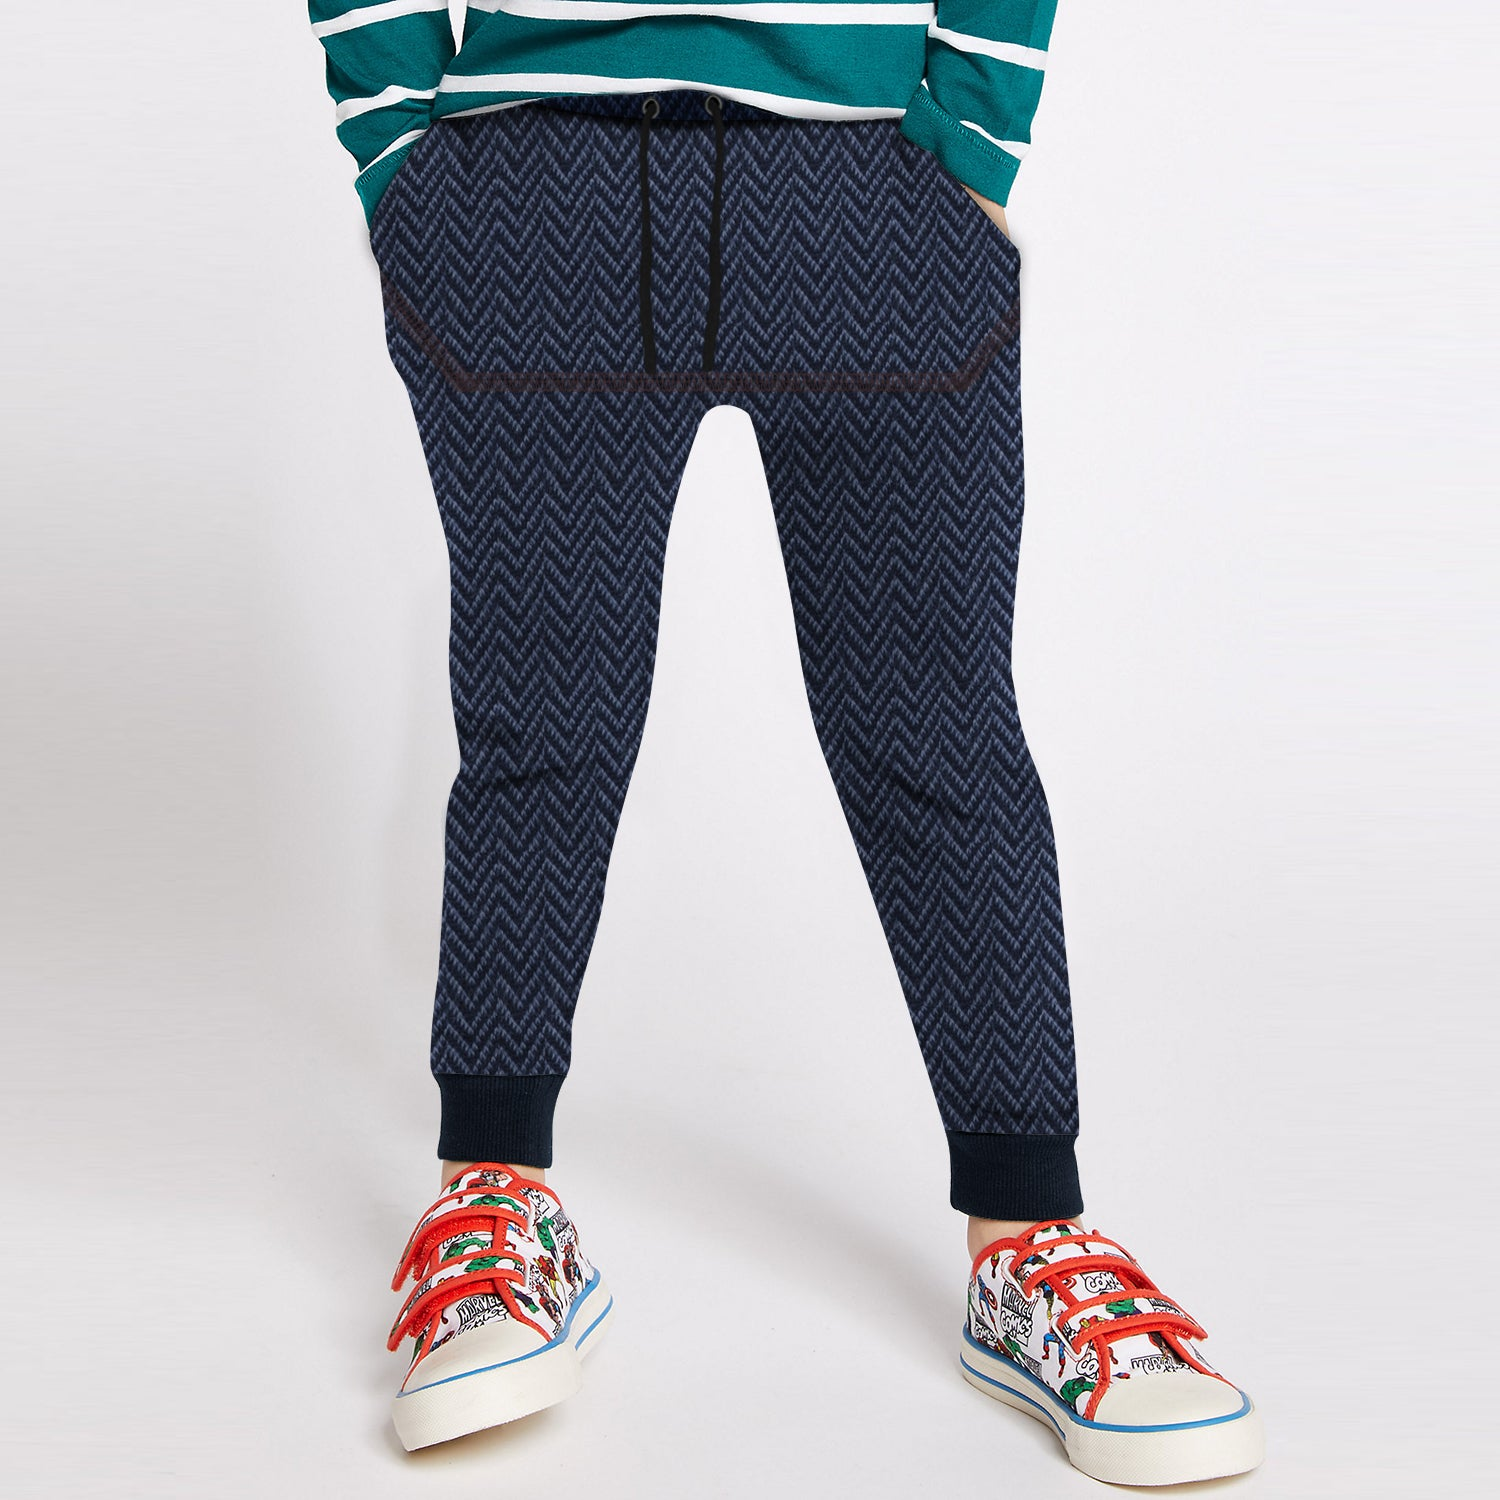 Next Fleece Jogger Trouser For Kids-Navy Melange Zig Zag Stripe-BE10009